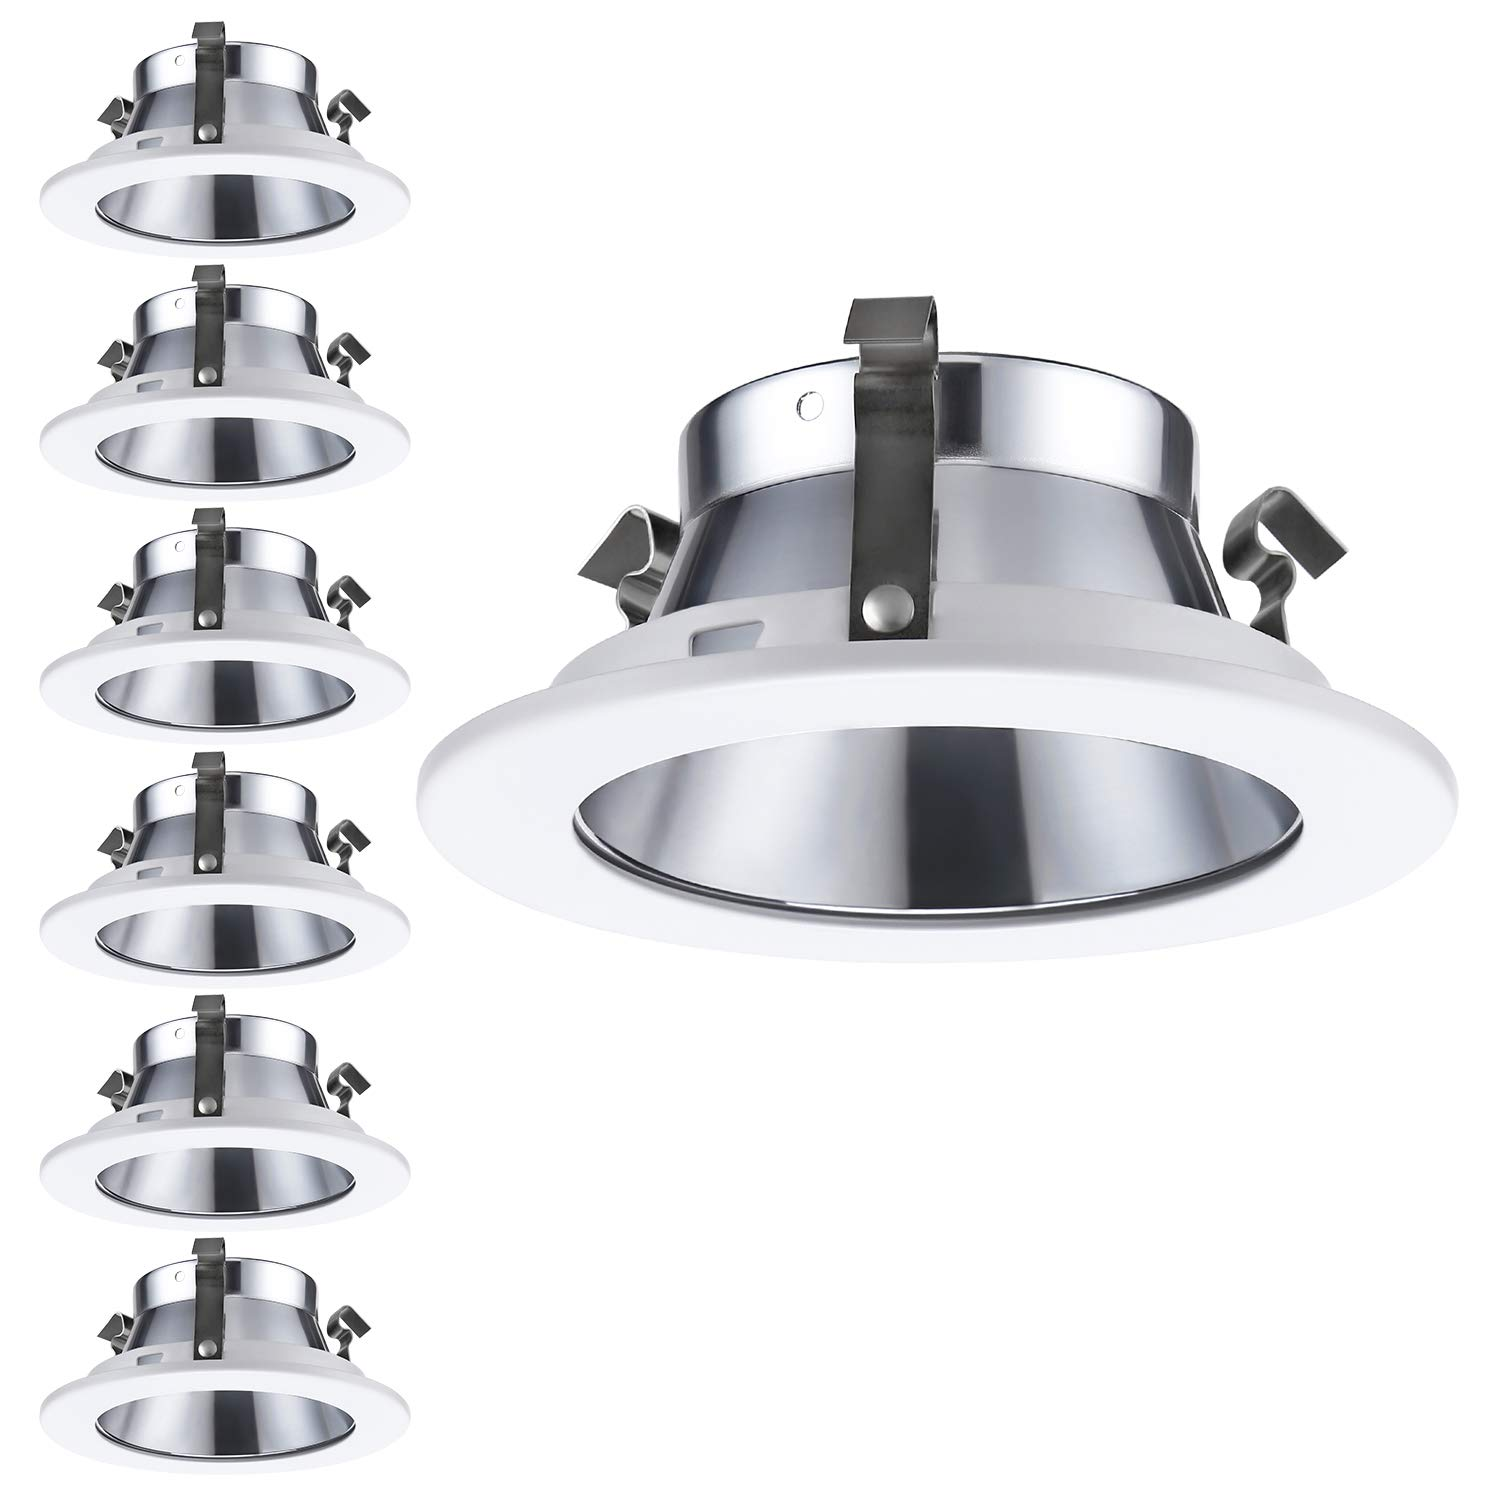 6 Pack 4 Inch Light Trim with Aluminum Reflector White Metal Step Baffle, for 4 Inch Recessed Can, Fit Halo/Juno Remodel Recessed Housing, Line Voltage Available